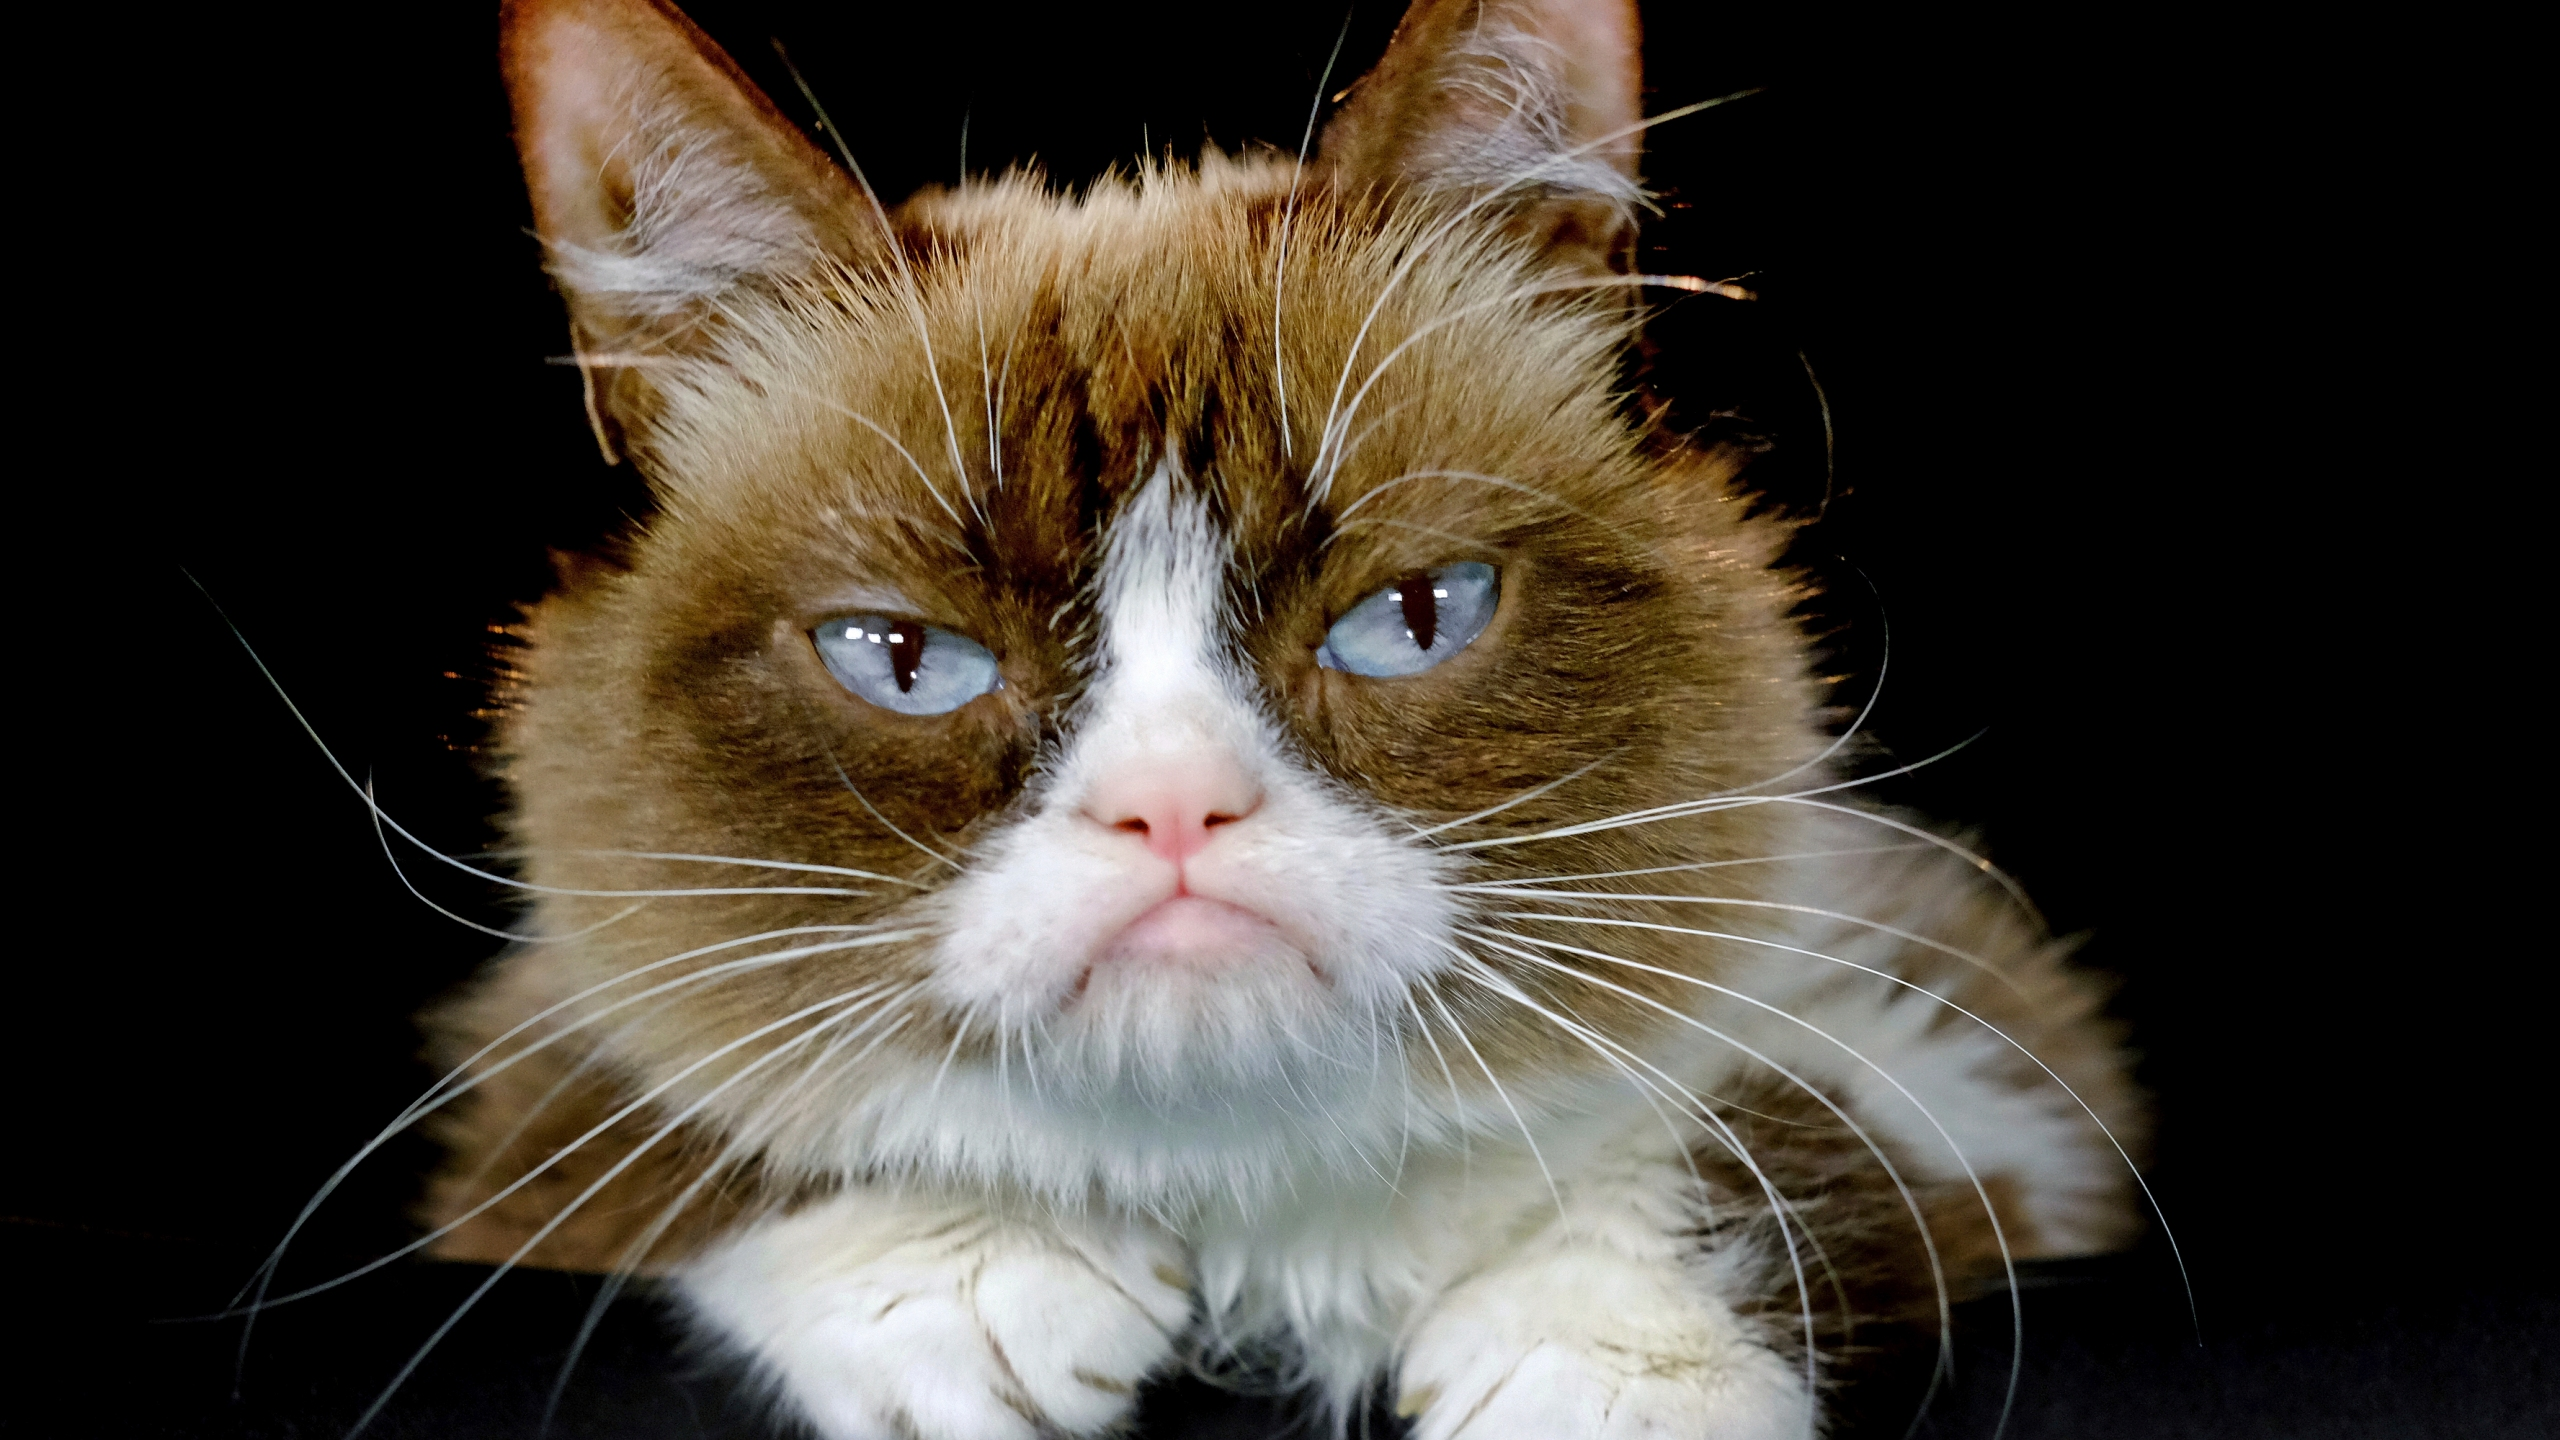 Grumpy_Cat_Death_23718-159532.jpg13697697